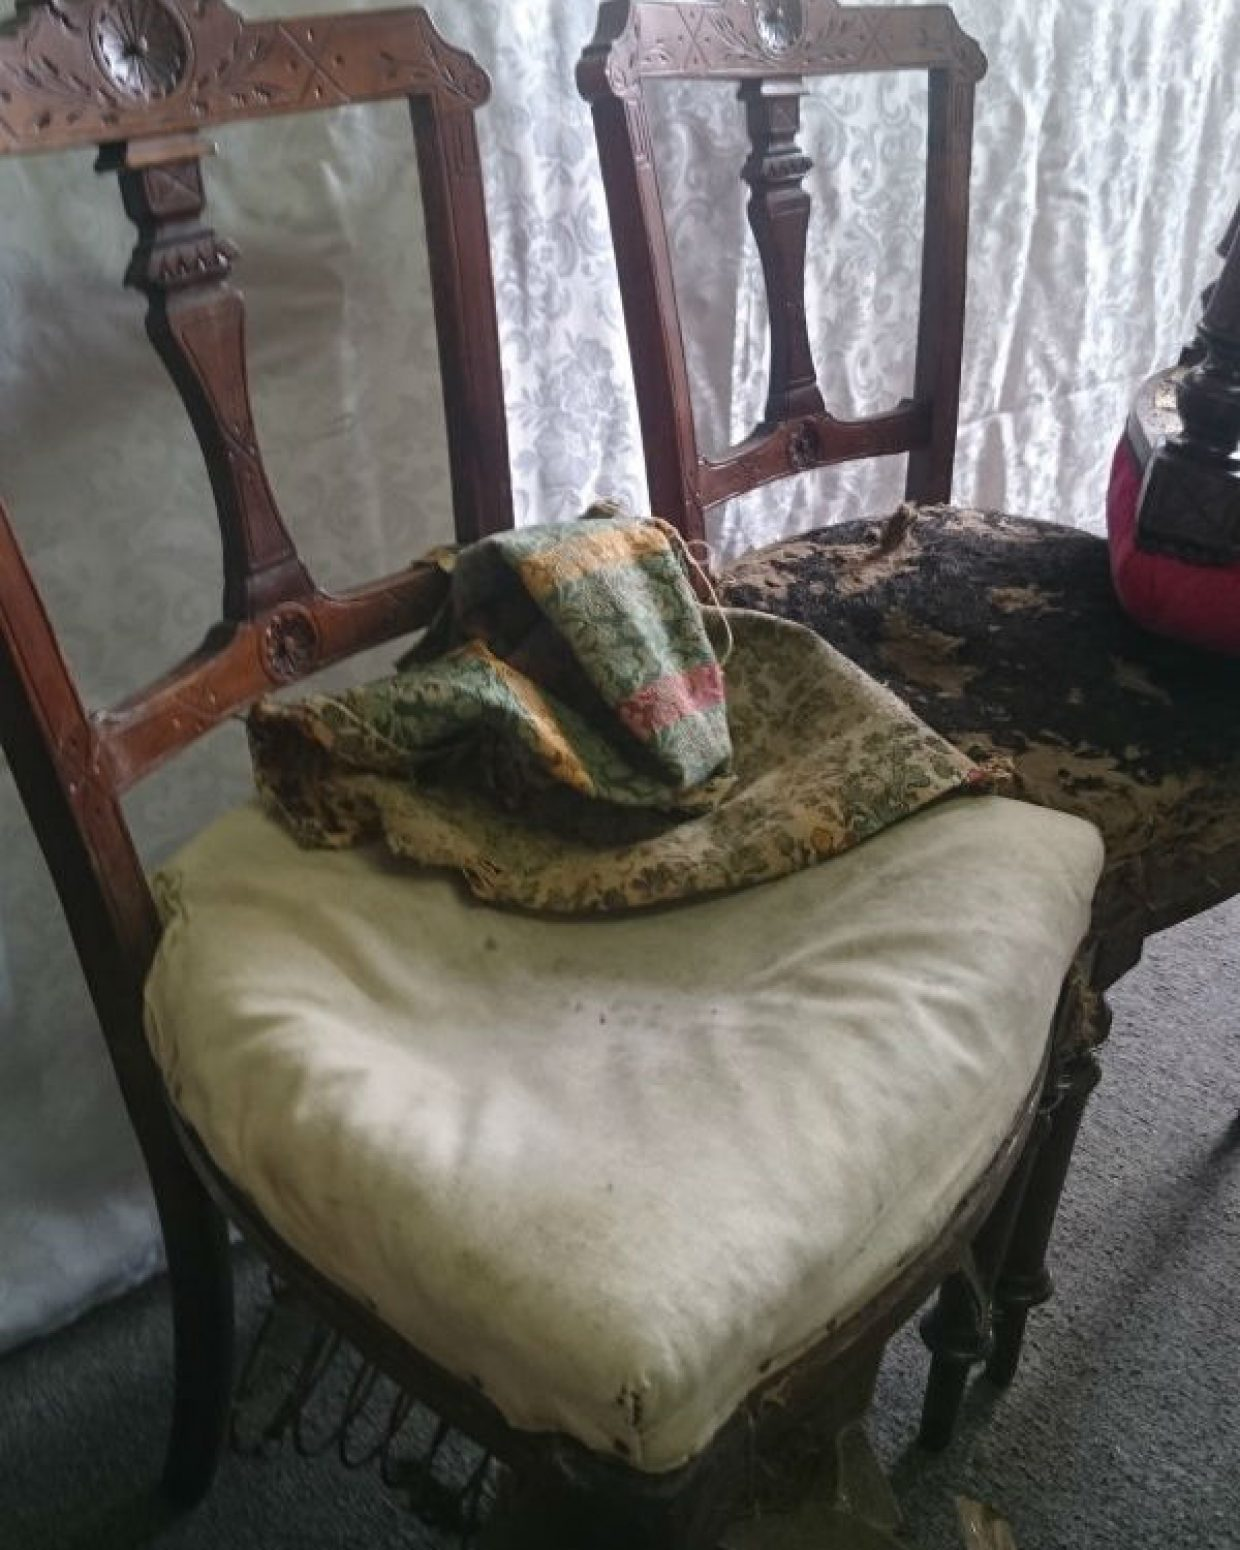 Dining Chair Before Refurbishment